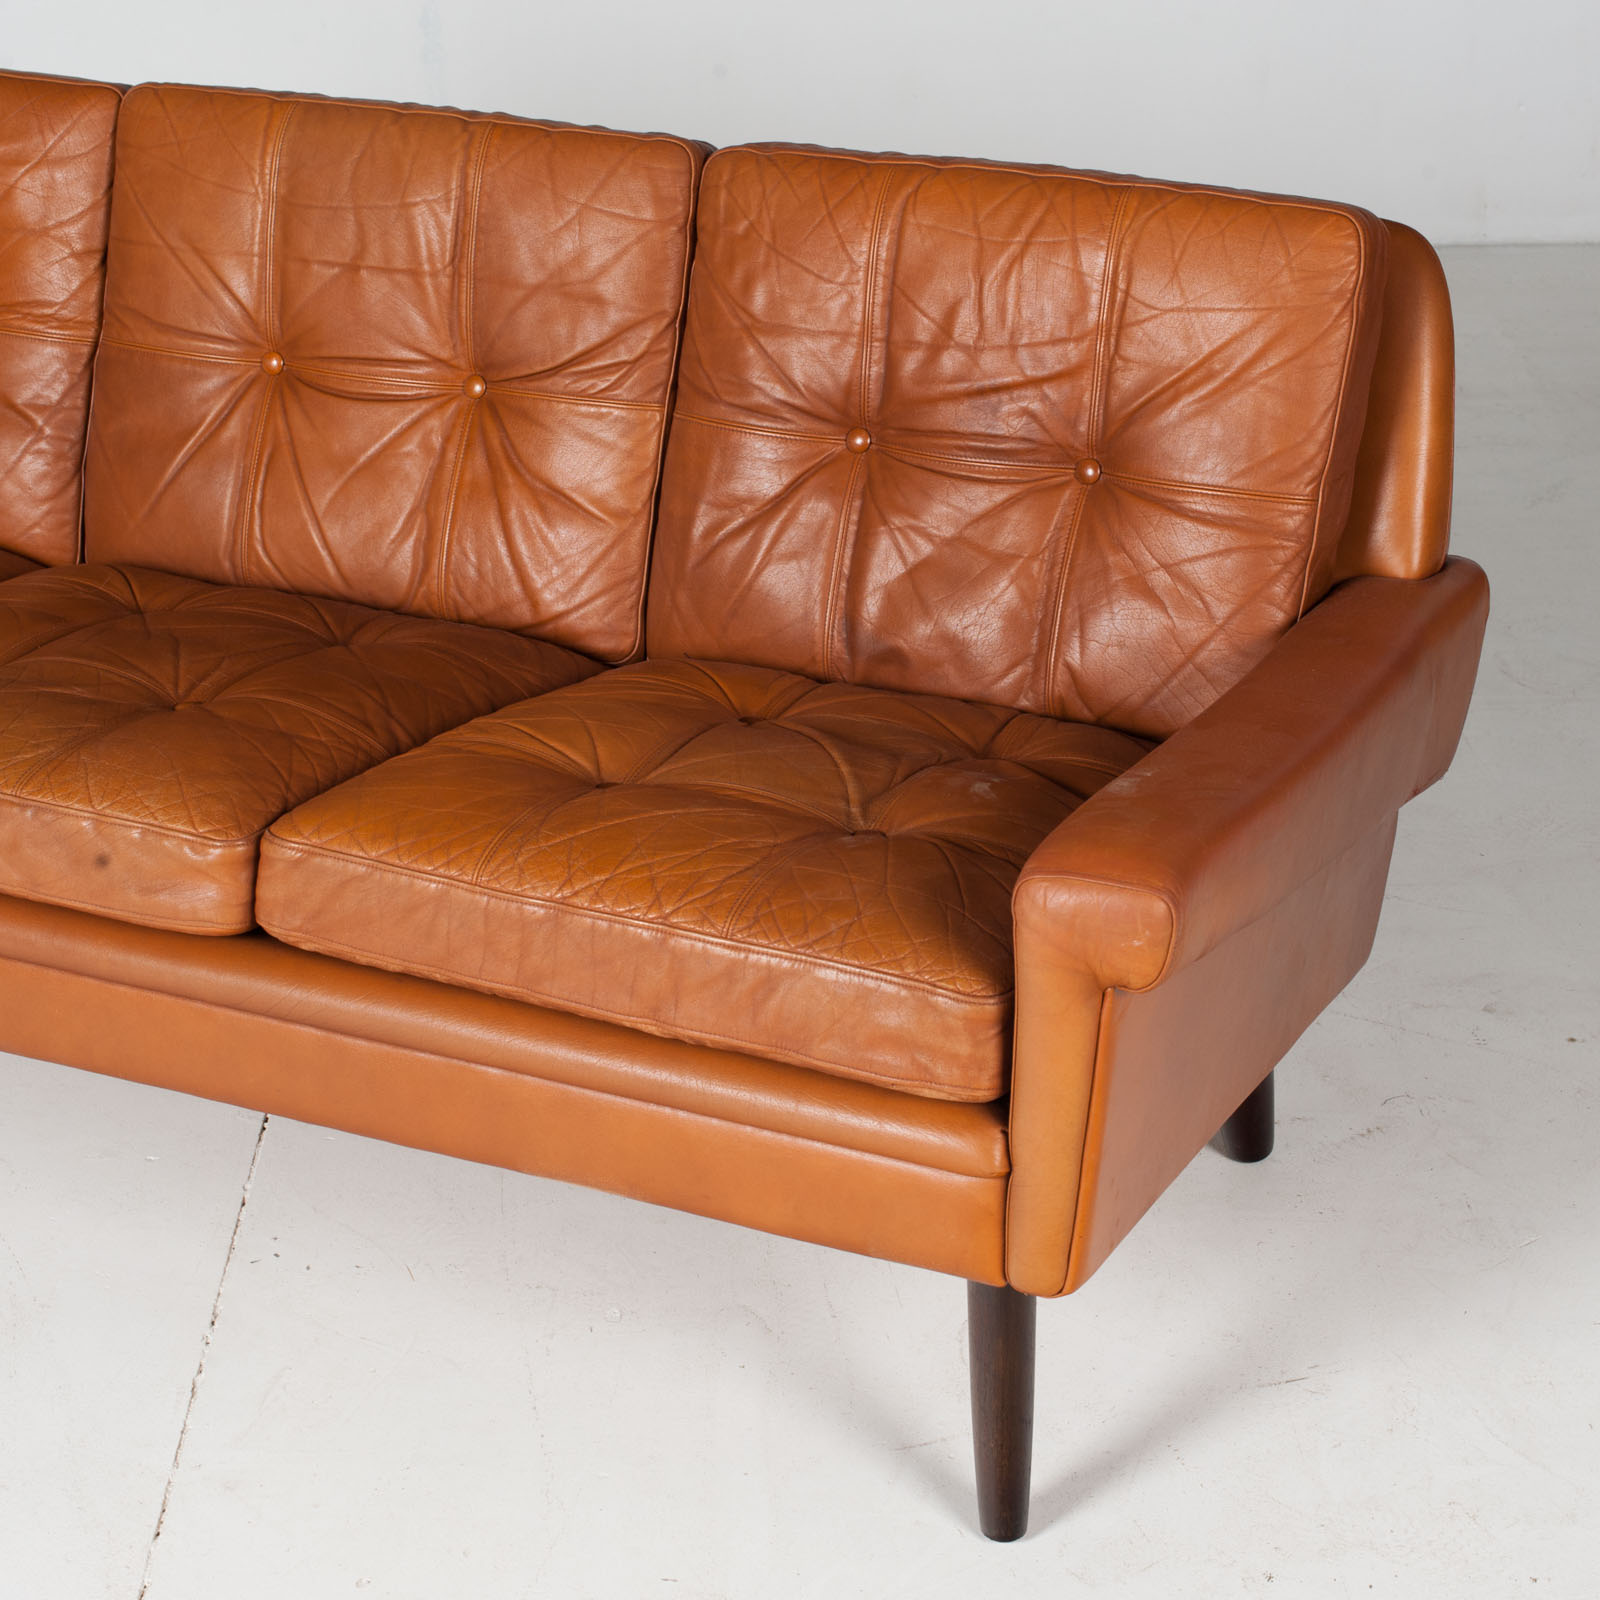 3 Seat Sofa In Tan Leather With Button Detailing For Skipper, 1960s, Denmark6